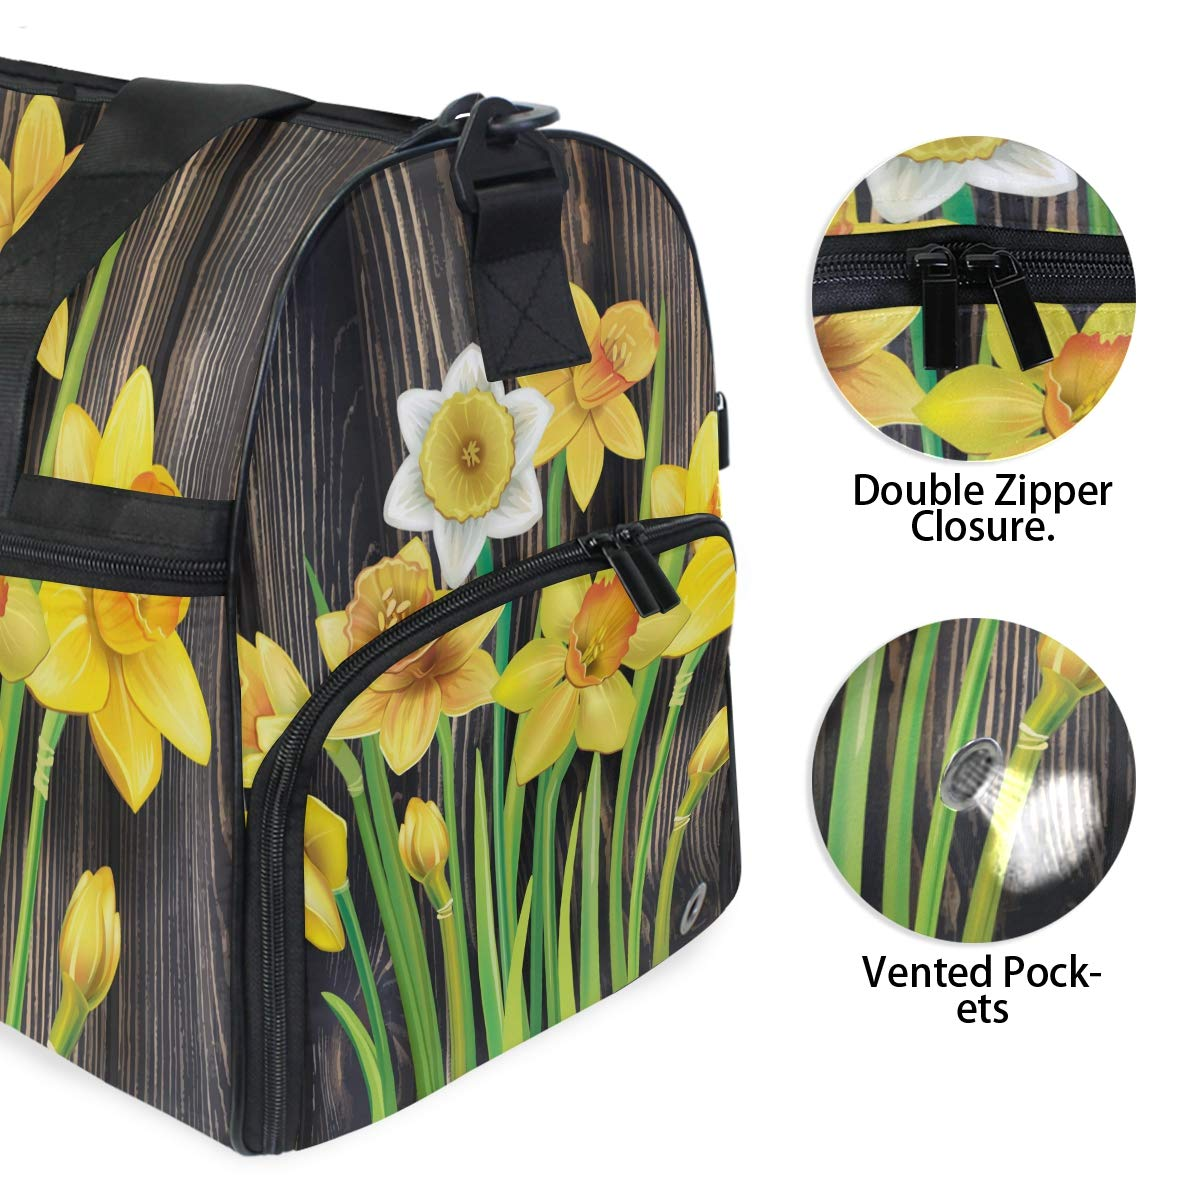 Vacation Travel Duffel Bag Daffodils Flowers On The Wooden Waterproof Lightweight Luggage bag for Sports Gym